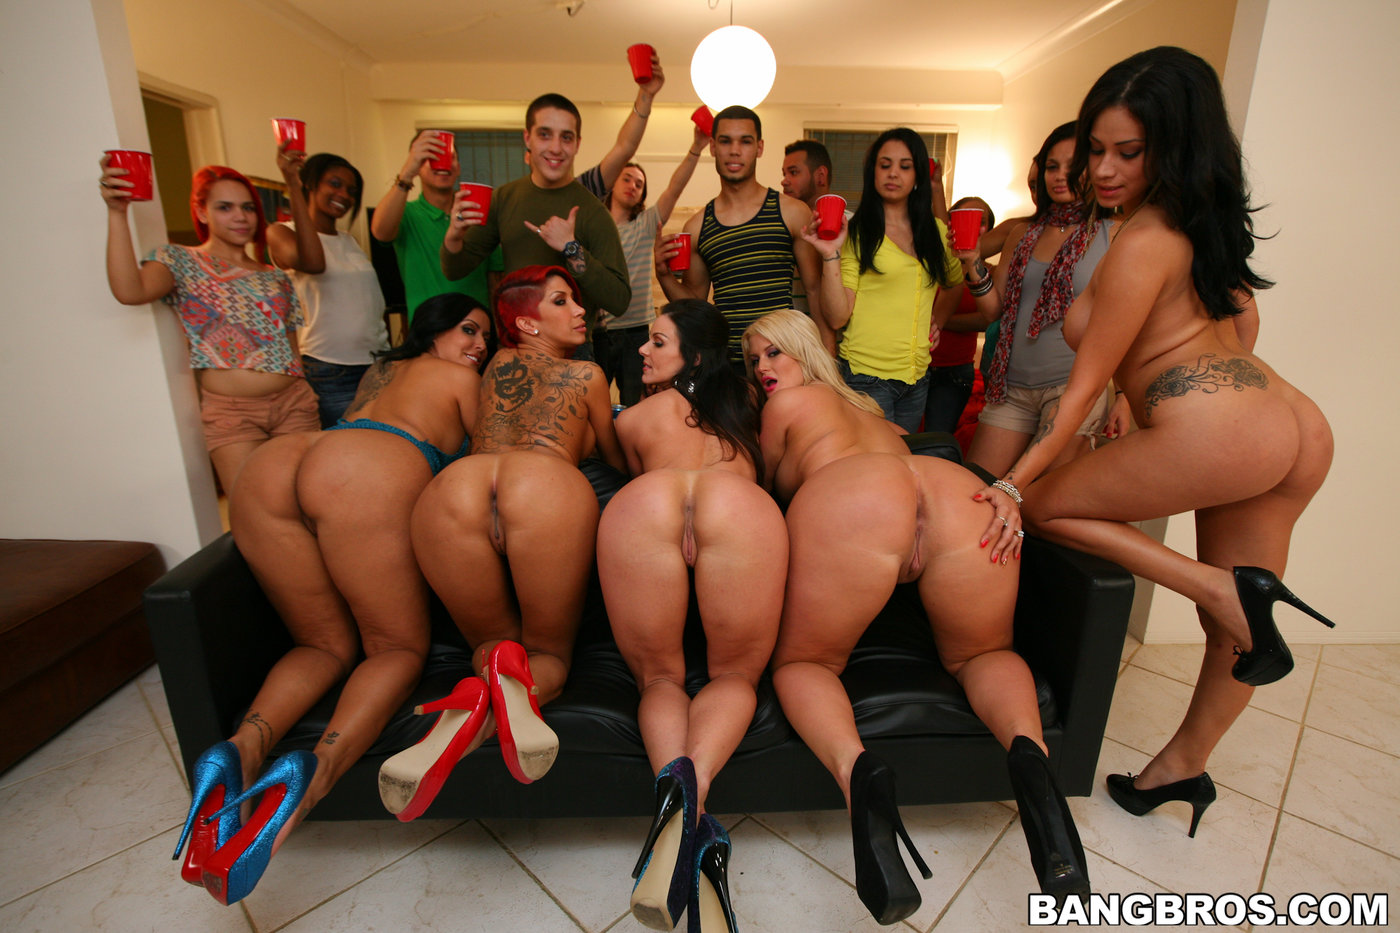 College party turns into a big bisexual orgy not to miss